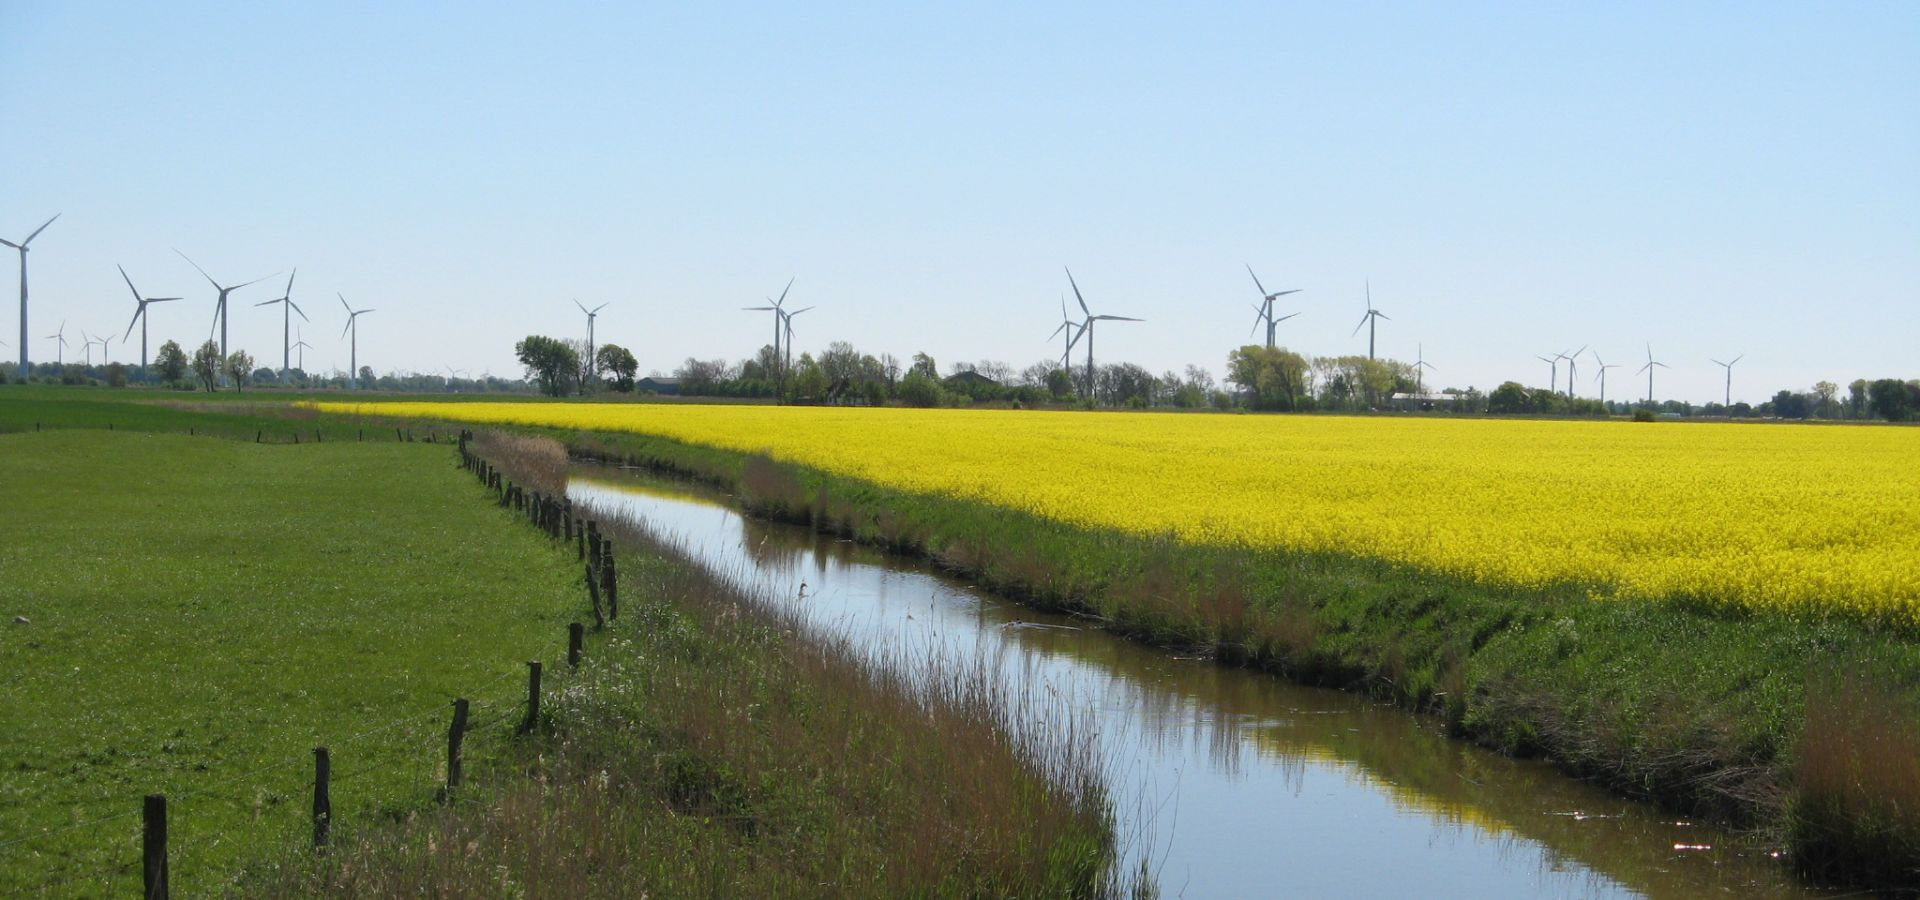 an animal enclosure separated from a rapeseed field by a small river, with wind turbines on the horizon